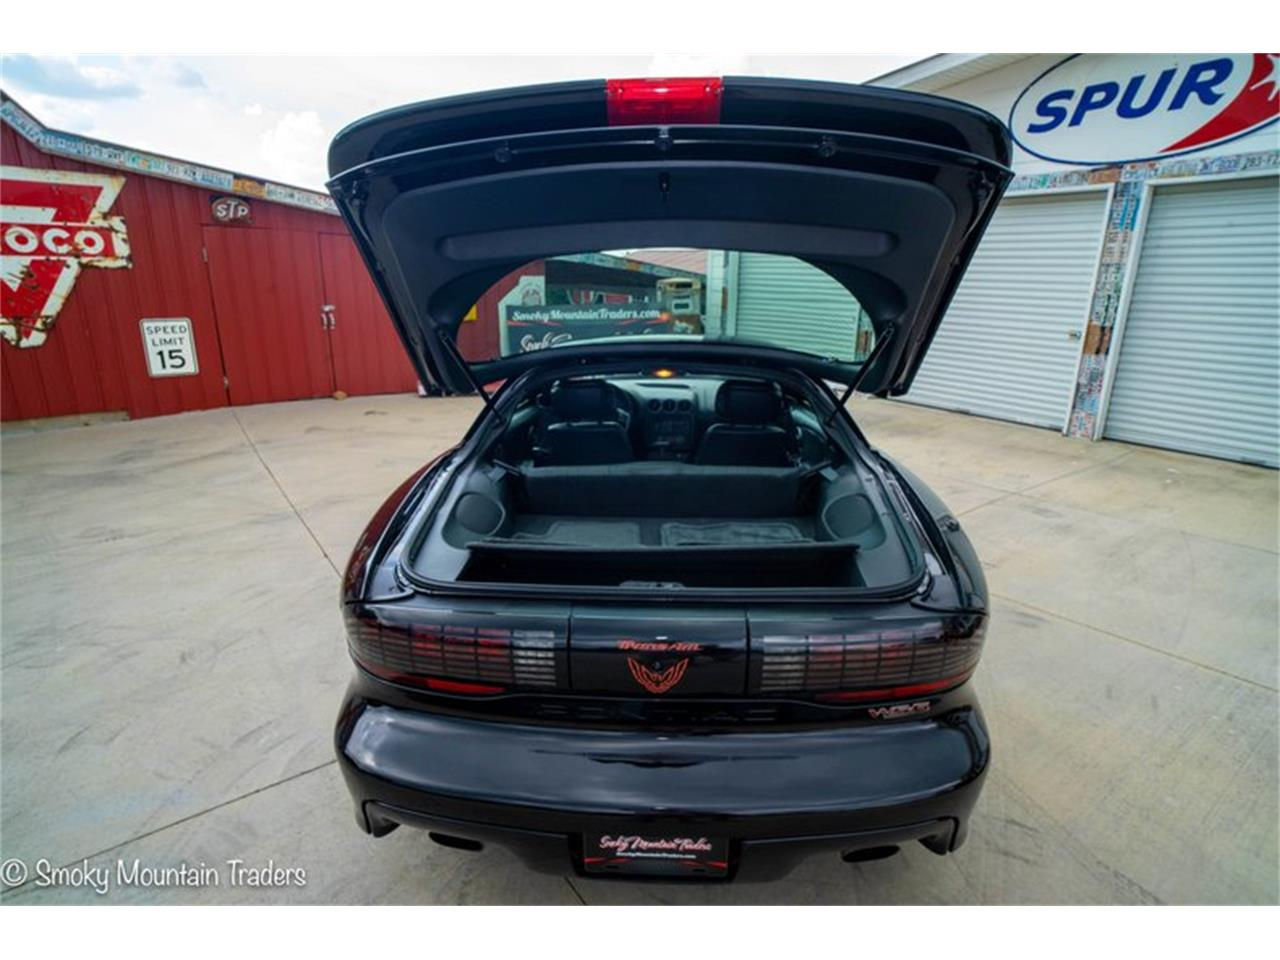 1996 Pontiac Firebird Trans Am (CC-1375177) for sale in Lenoir City, Tennessee